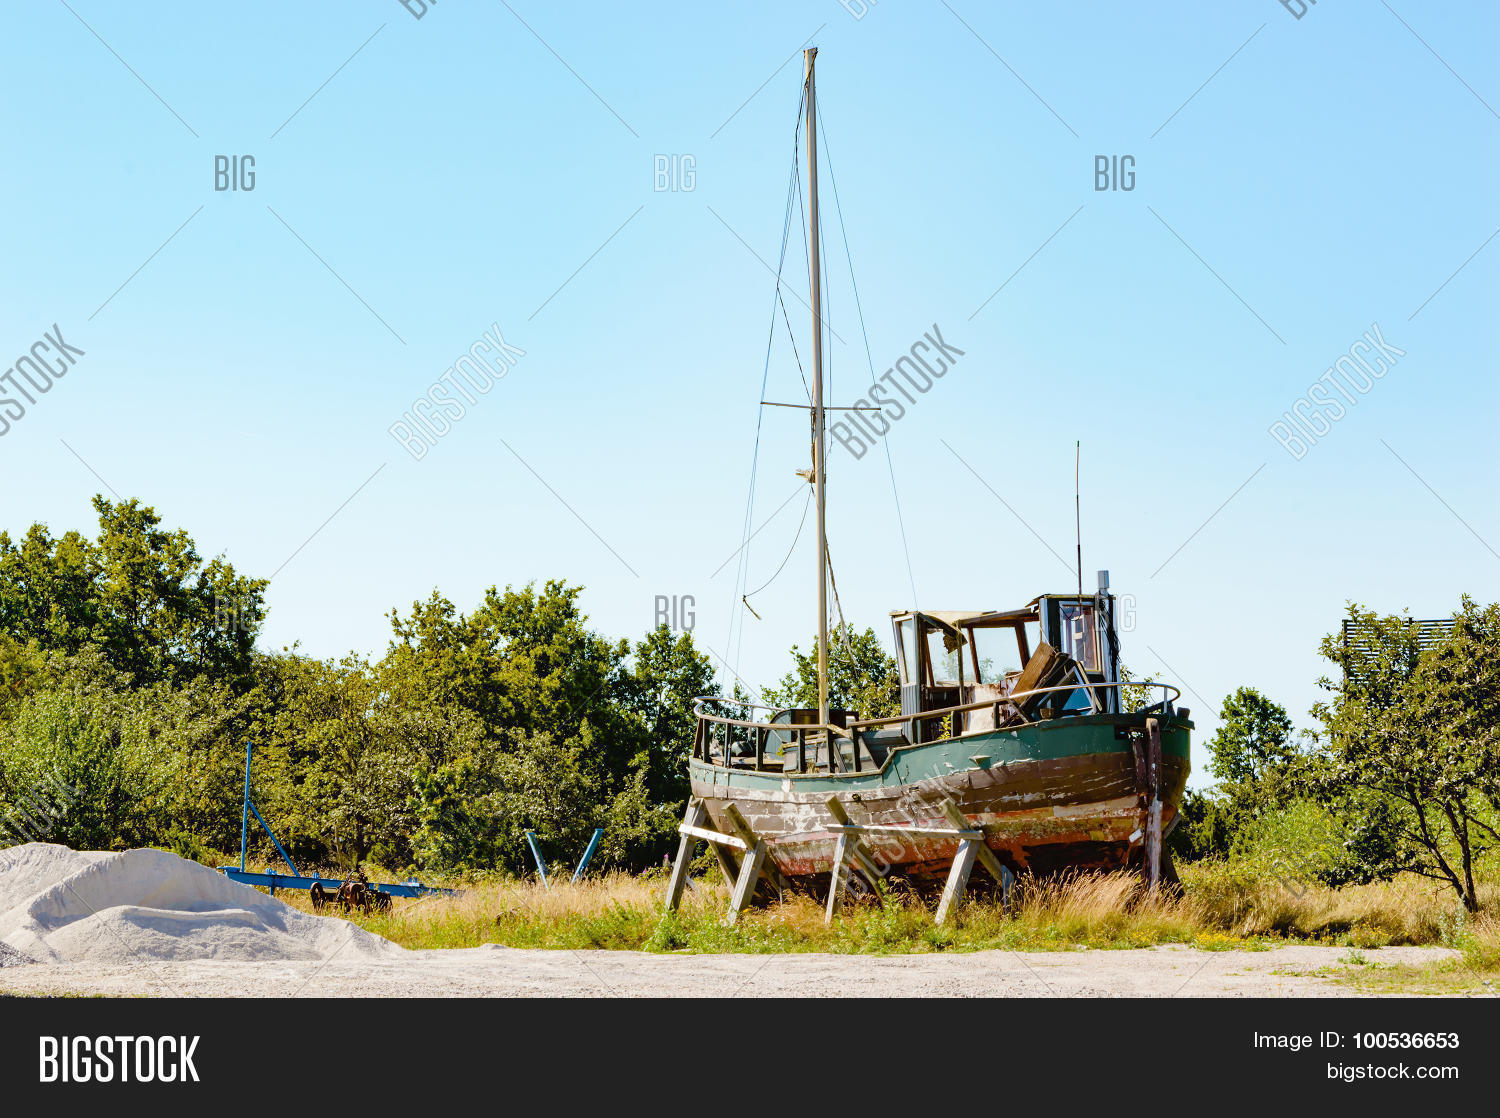 Old Fishing Boat Image Photo Free Trial Bigstock